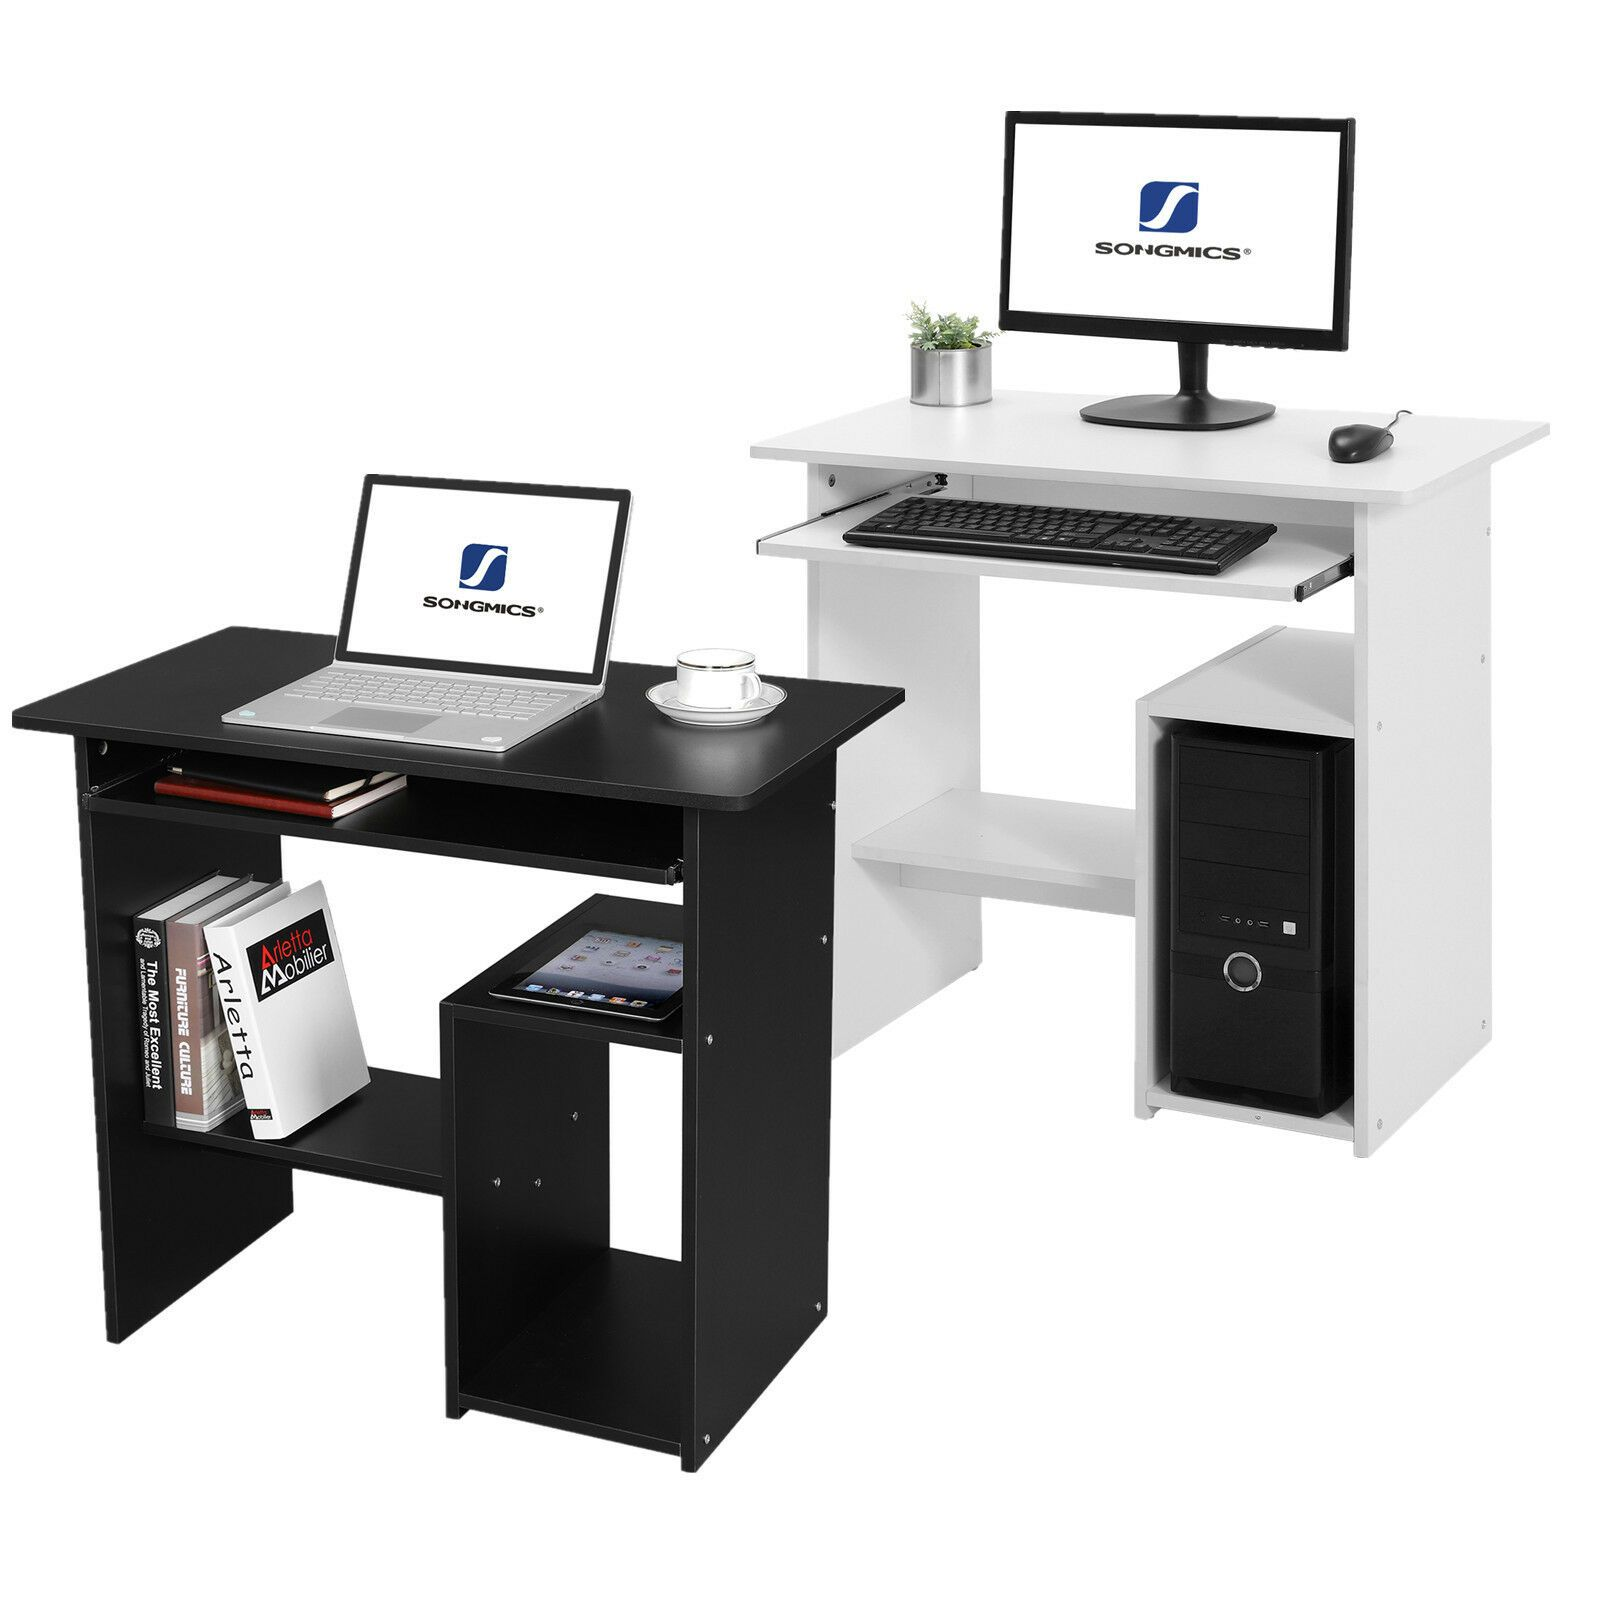 Bureau Informatique Table Informatique Meuble De Bureau Pour Ordinateur Pc Table Informatique Idées De Informatique In Desk Work Station Desk Workstation